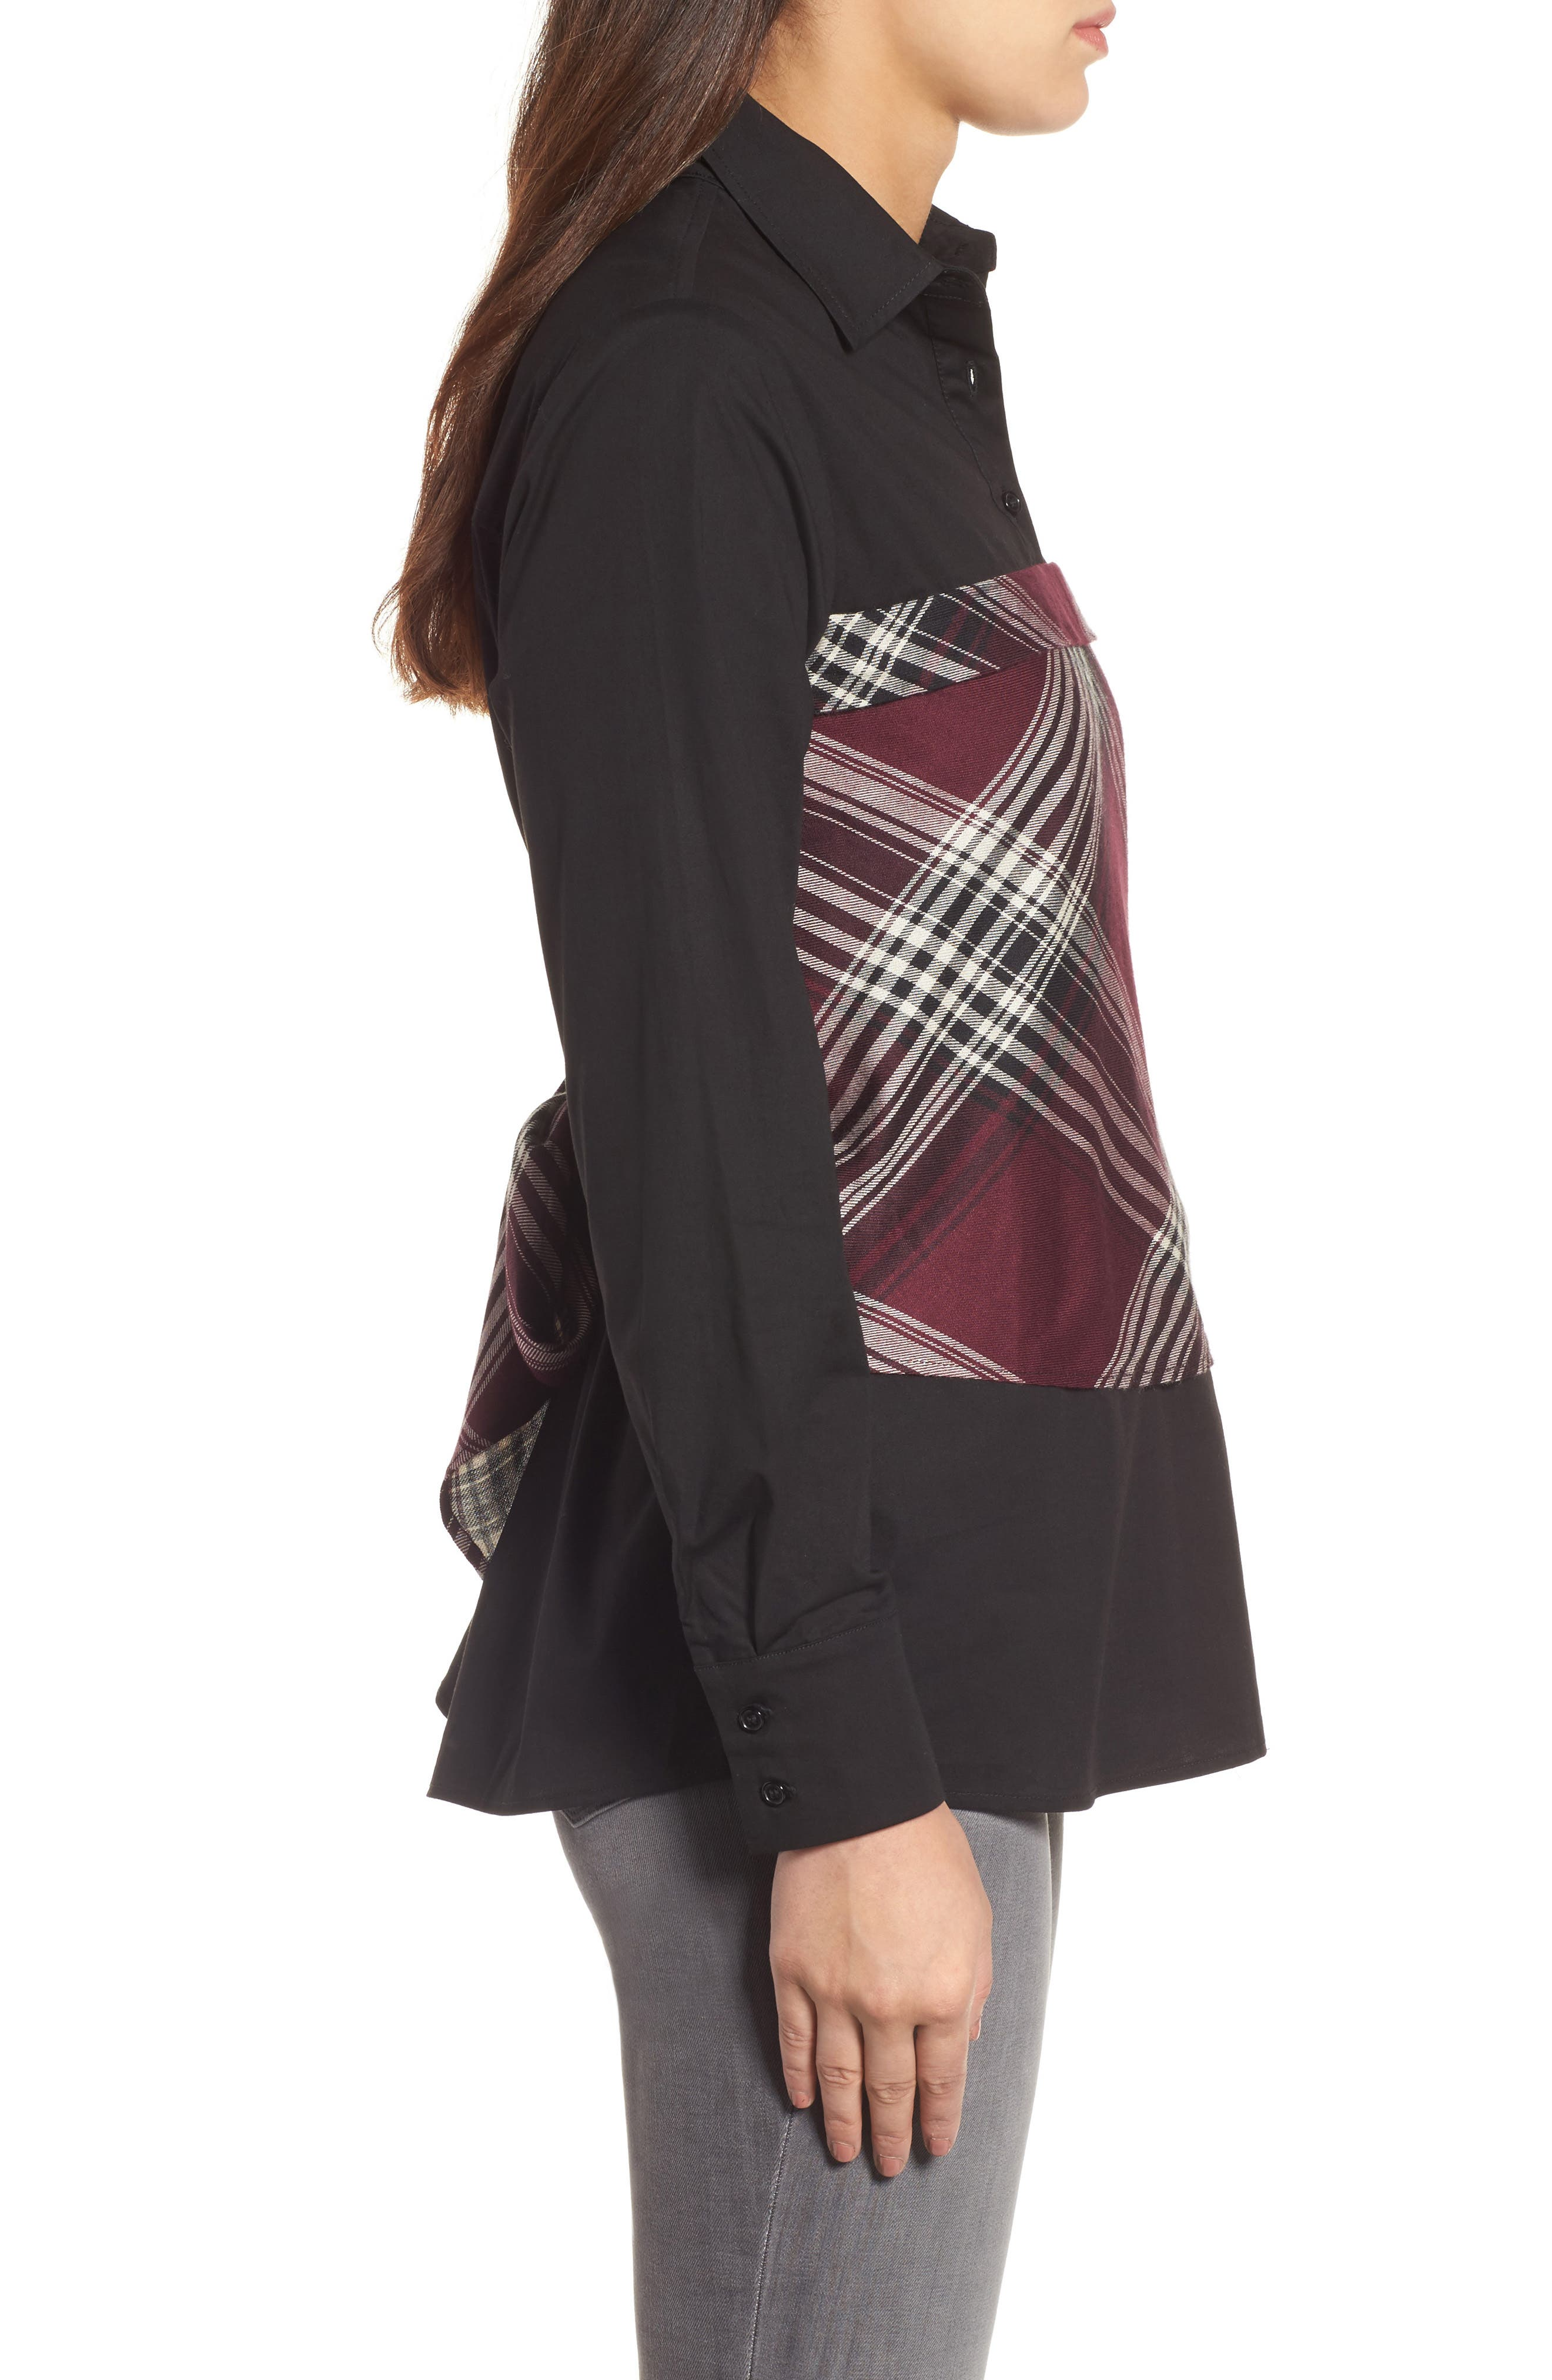 Plaid Corset Shirt,                             Alternate thumbnail 3, color,                             Wine/ Black Plaid/ Black